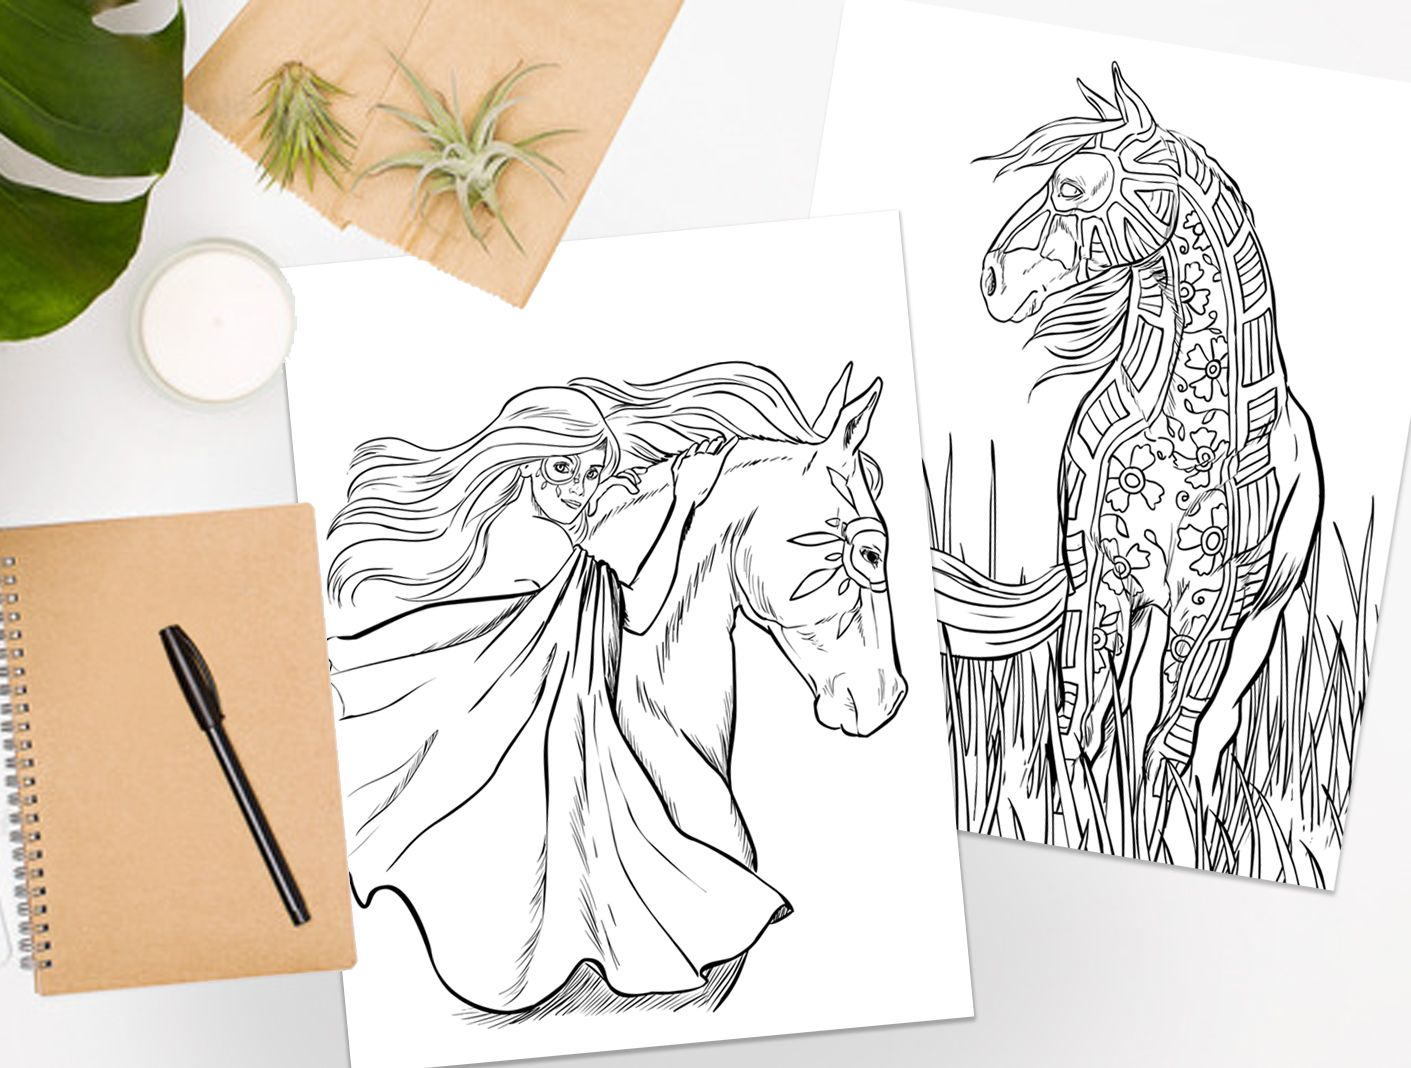 Get Updates On Upcoming Books And Free Coloring Pages